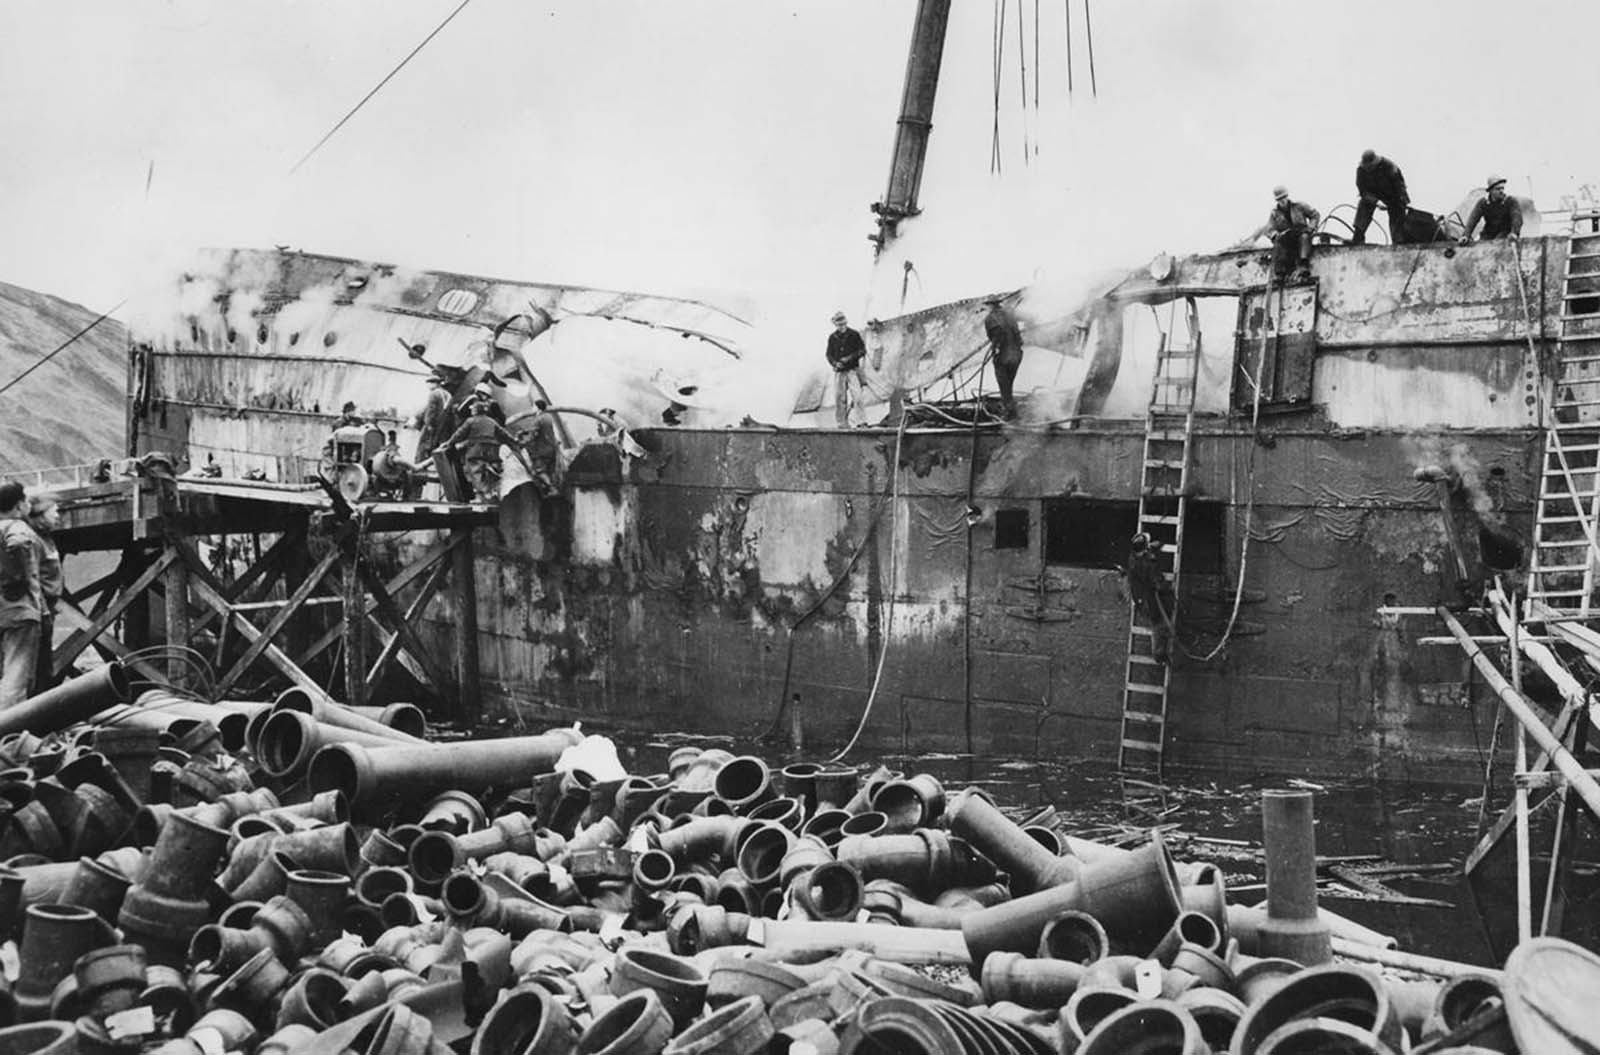 The ruins of a bombed ship at Dutch Harbor, Alaska, on June 5, 1942.